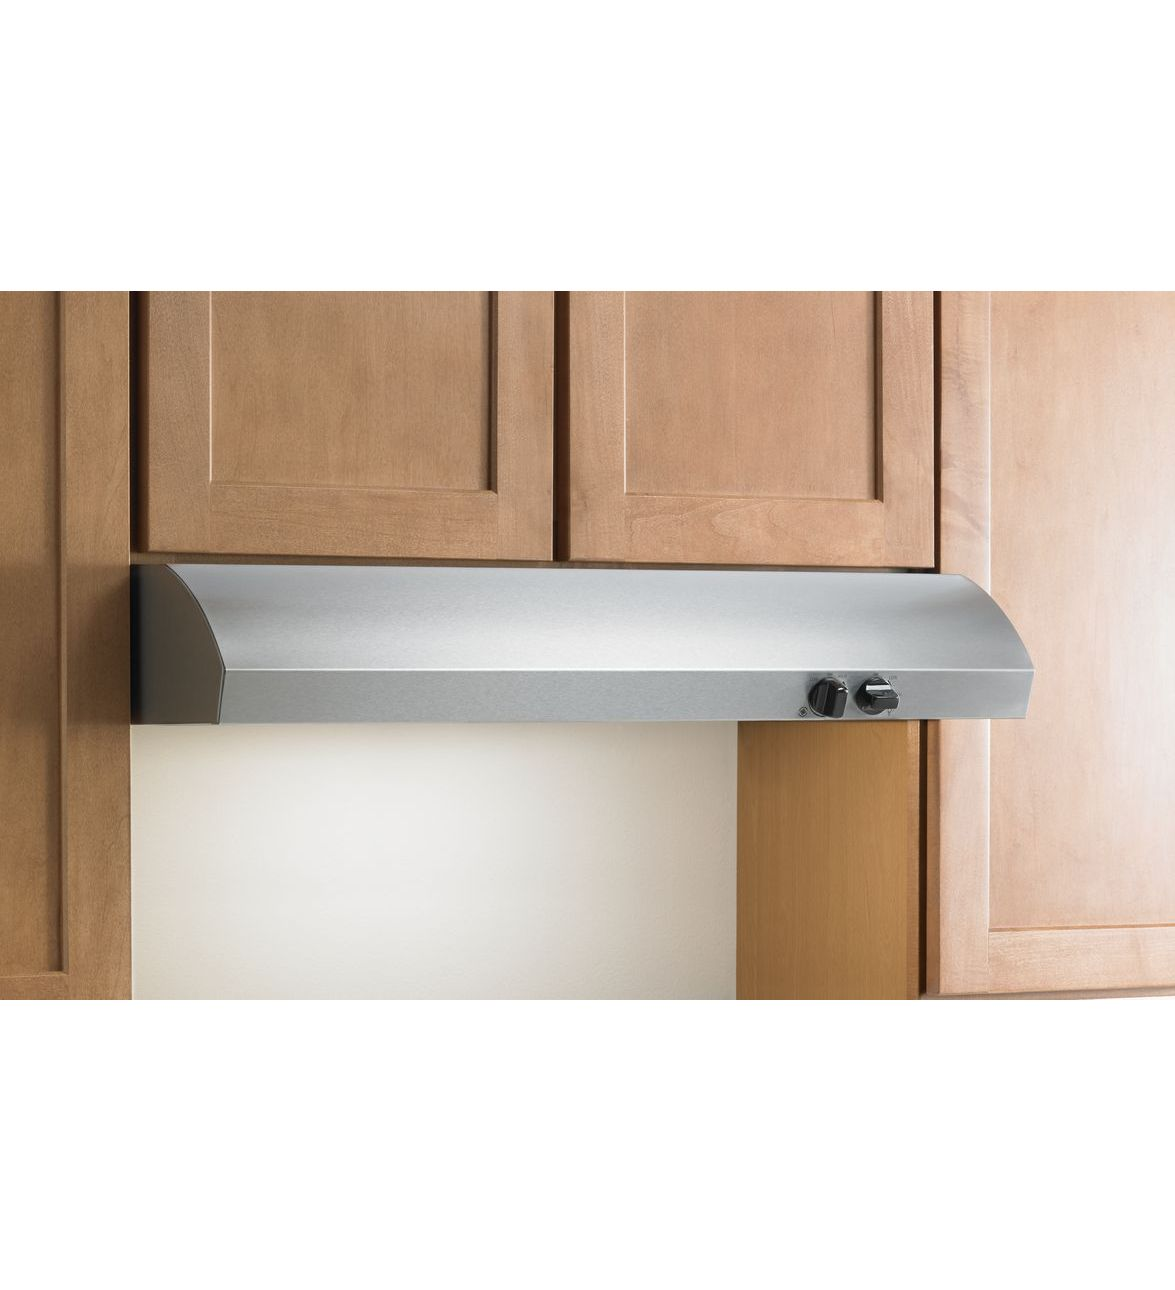 30 Range Hood ~ Uxt ads quot range hood with the fit system